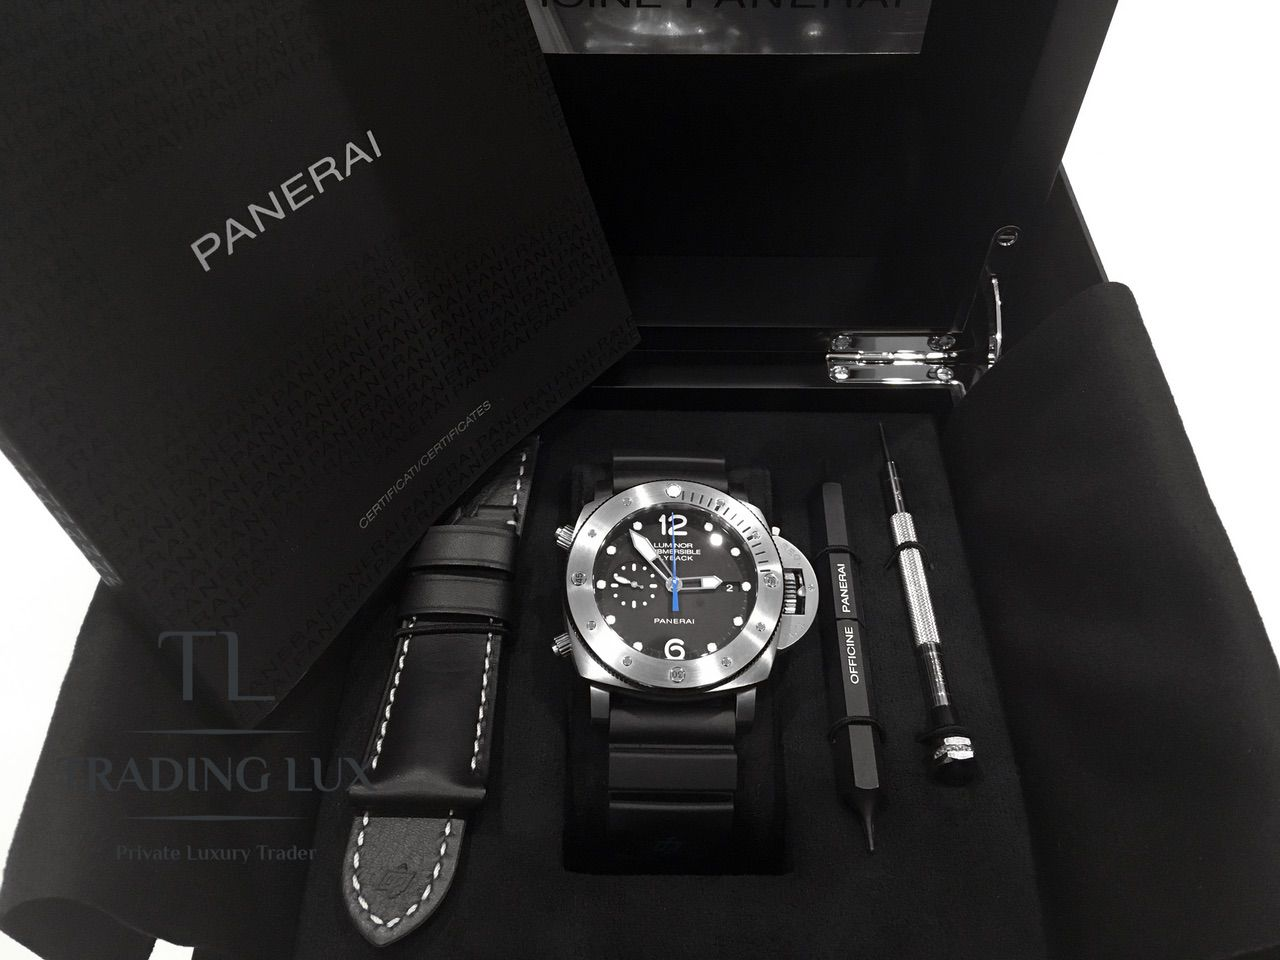 Panerai-Submersible-Chrono-PAM00614-11